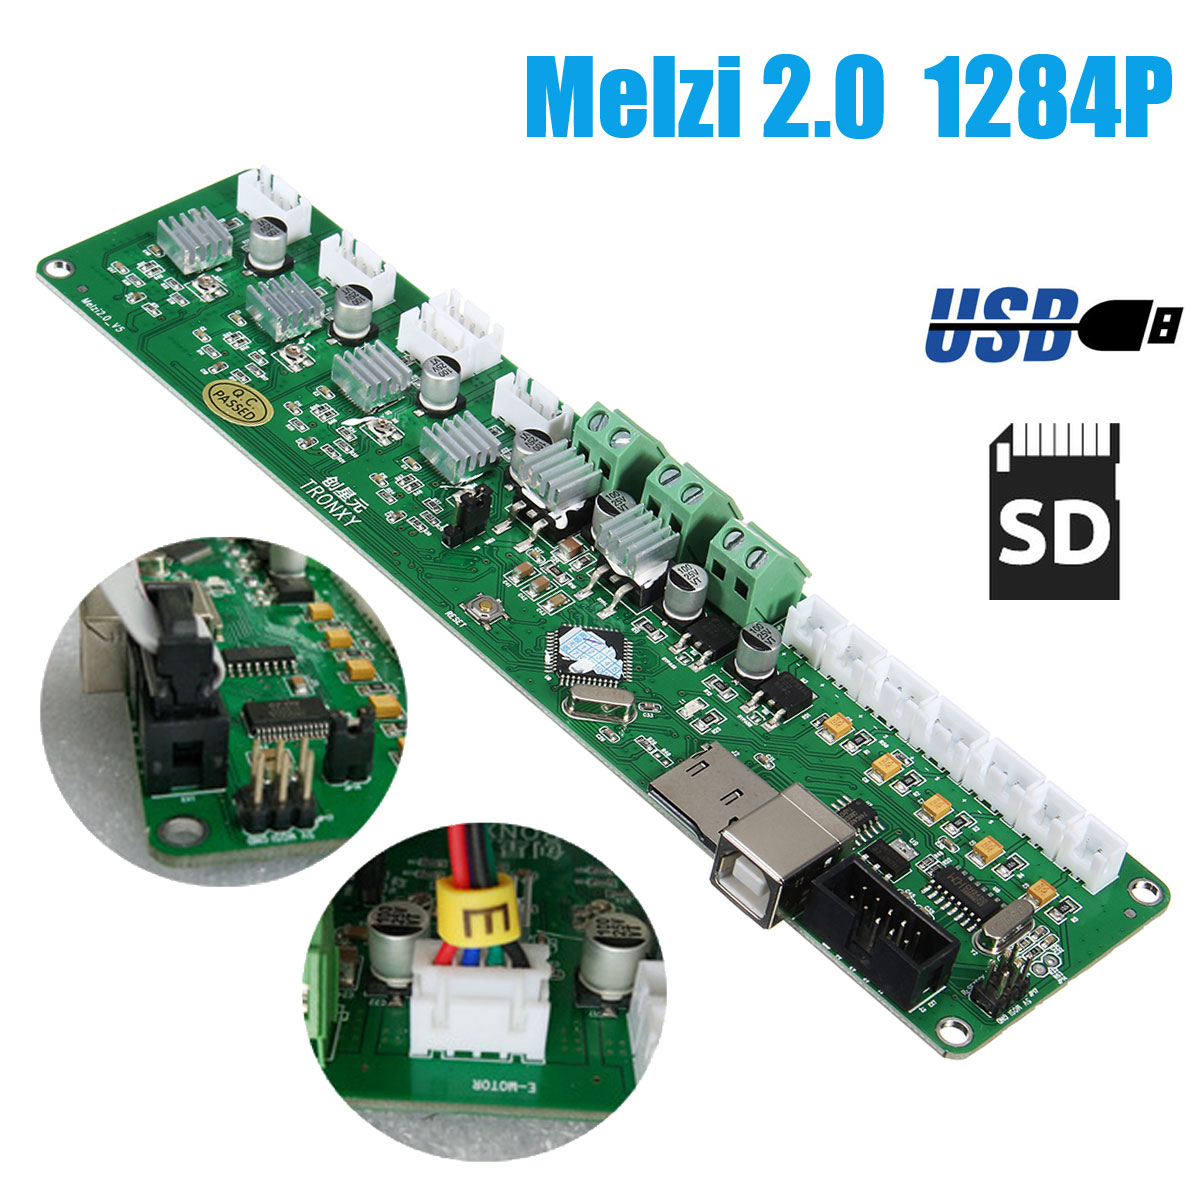 S SKYEE High Quality 3D Printer Controller Board DIY Kit PCB Card Board Mainboard Melzi 2.0 1284P Motherboard DIY melzi 1284p